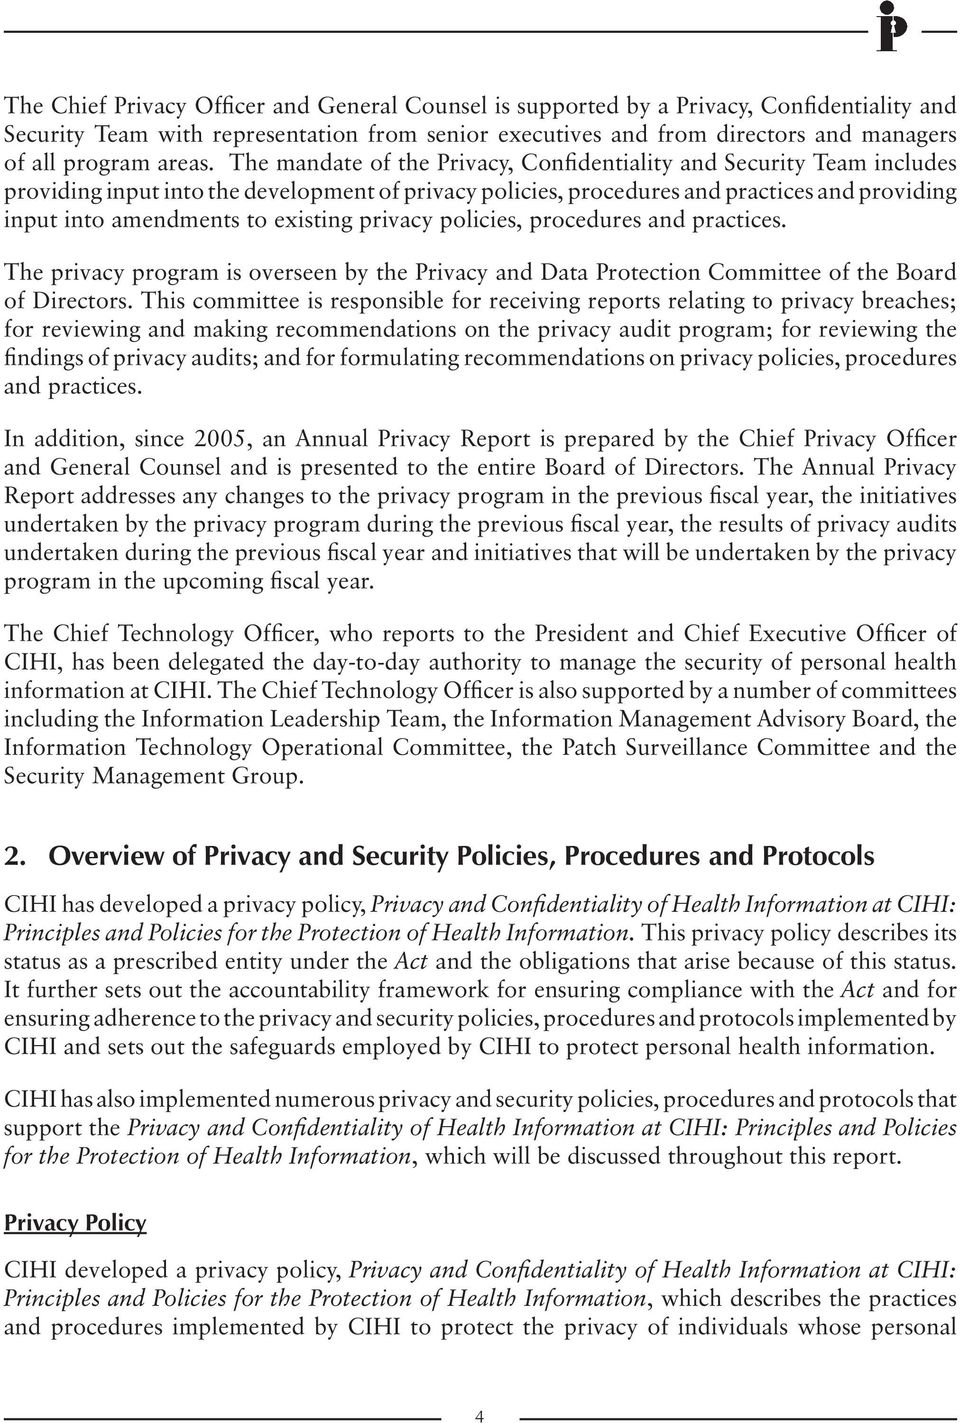 The mandate of the Privacy, Confidentiality and Security Team includes providing input into the development of privacy policies, procedures and practices and providing input into amendments to